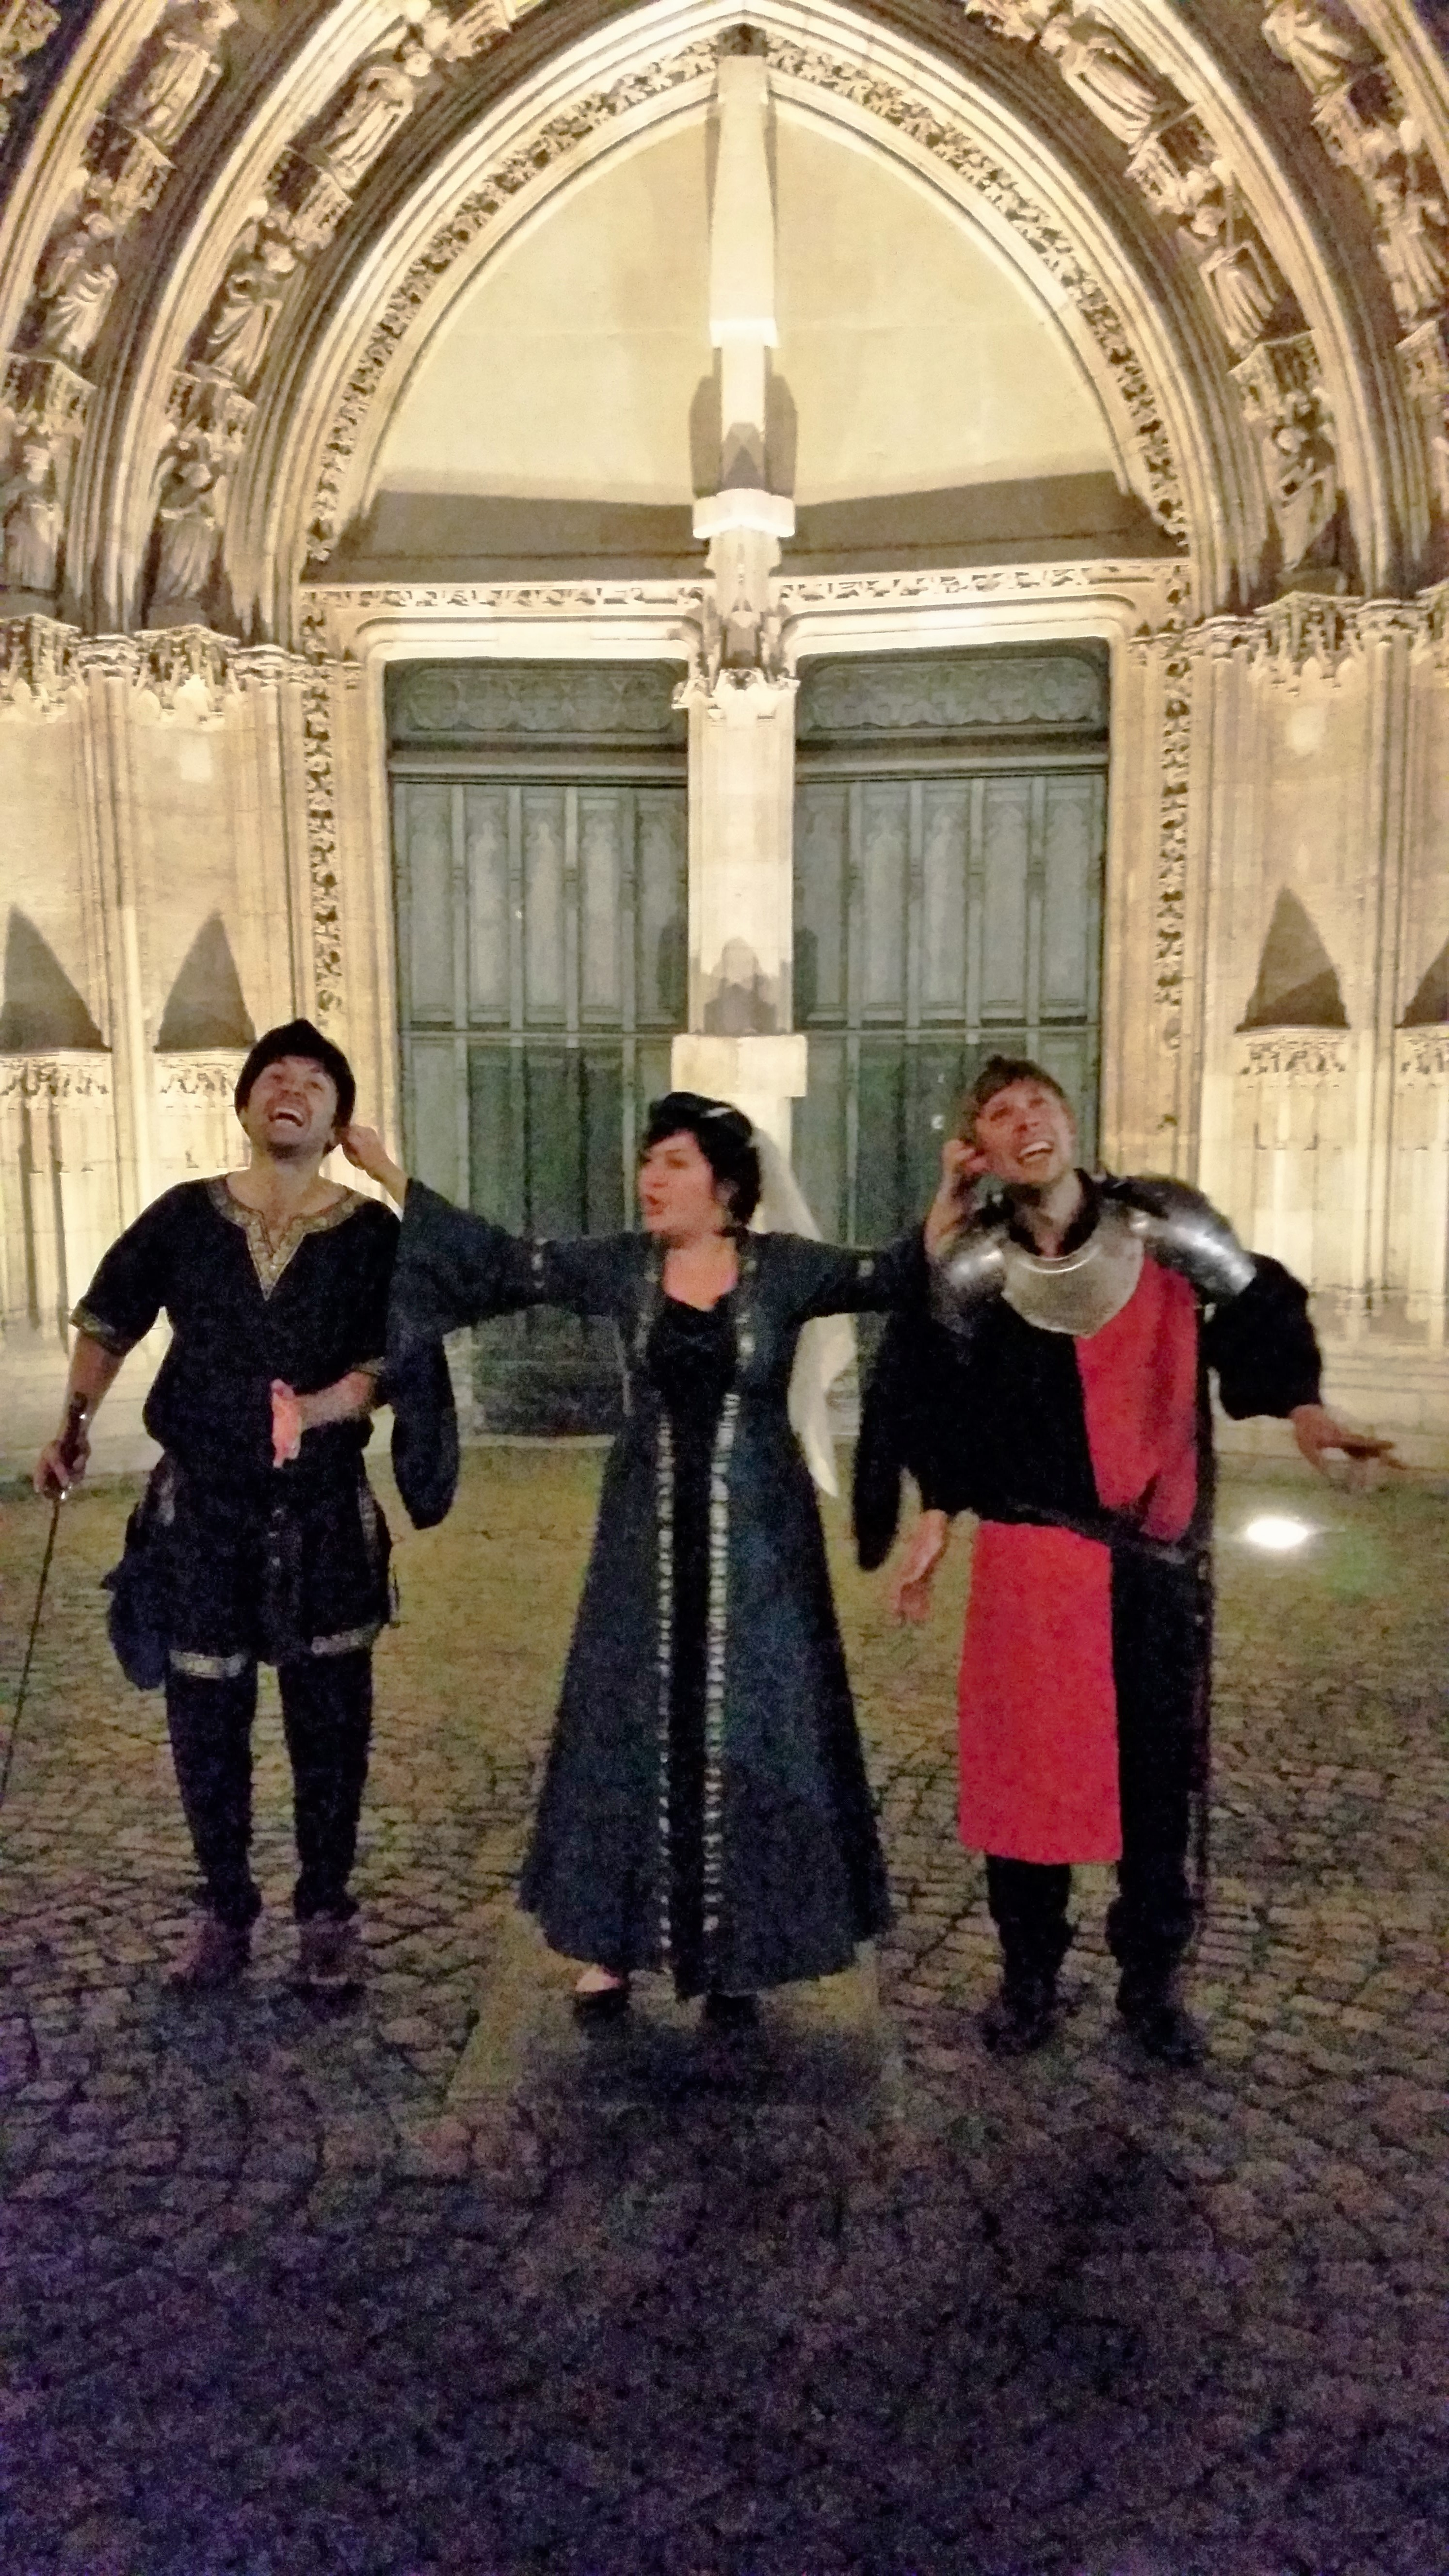 Les 3 acteurs de la visite de Bordeaux by night !